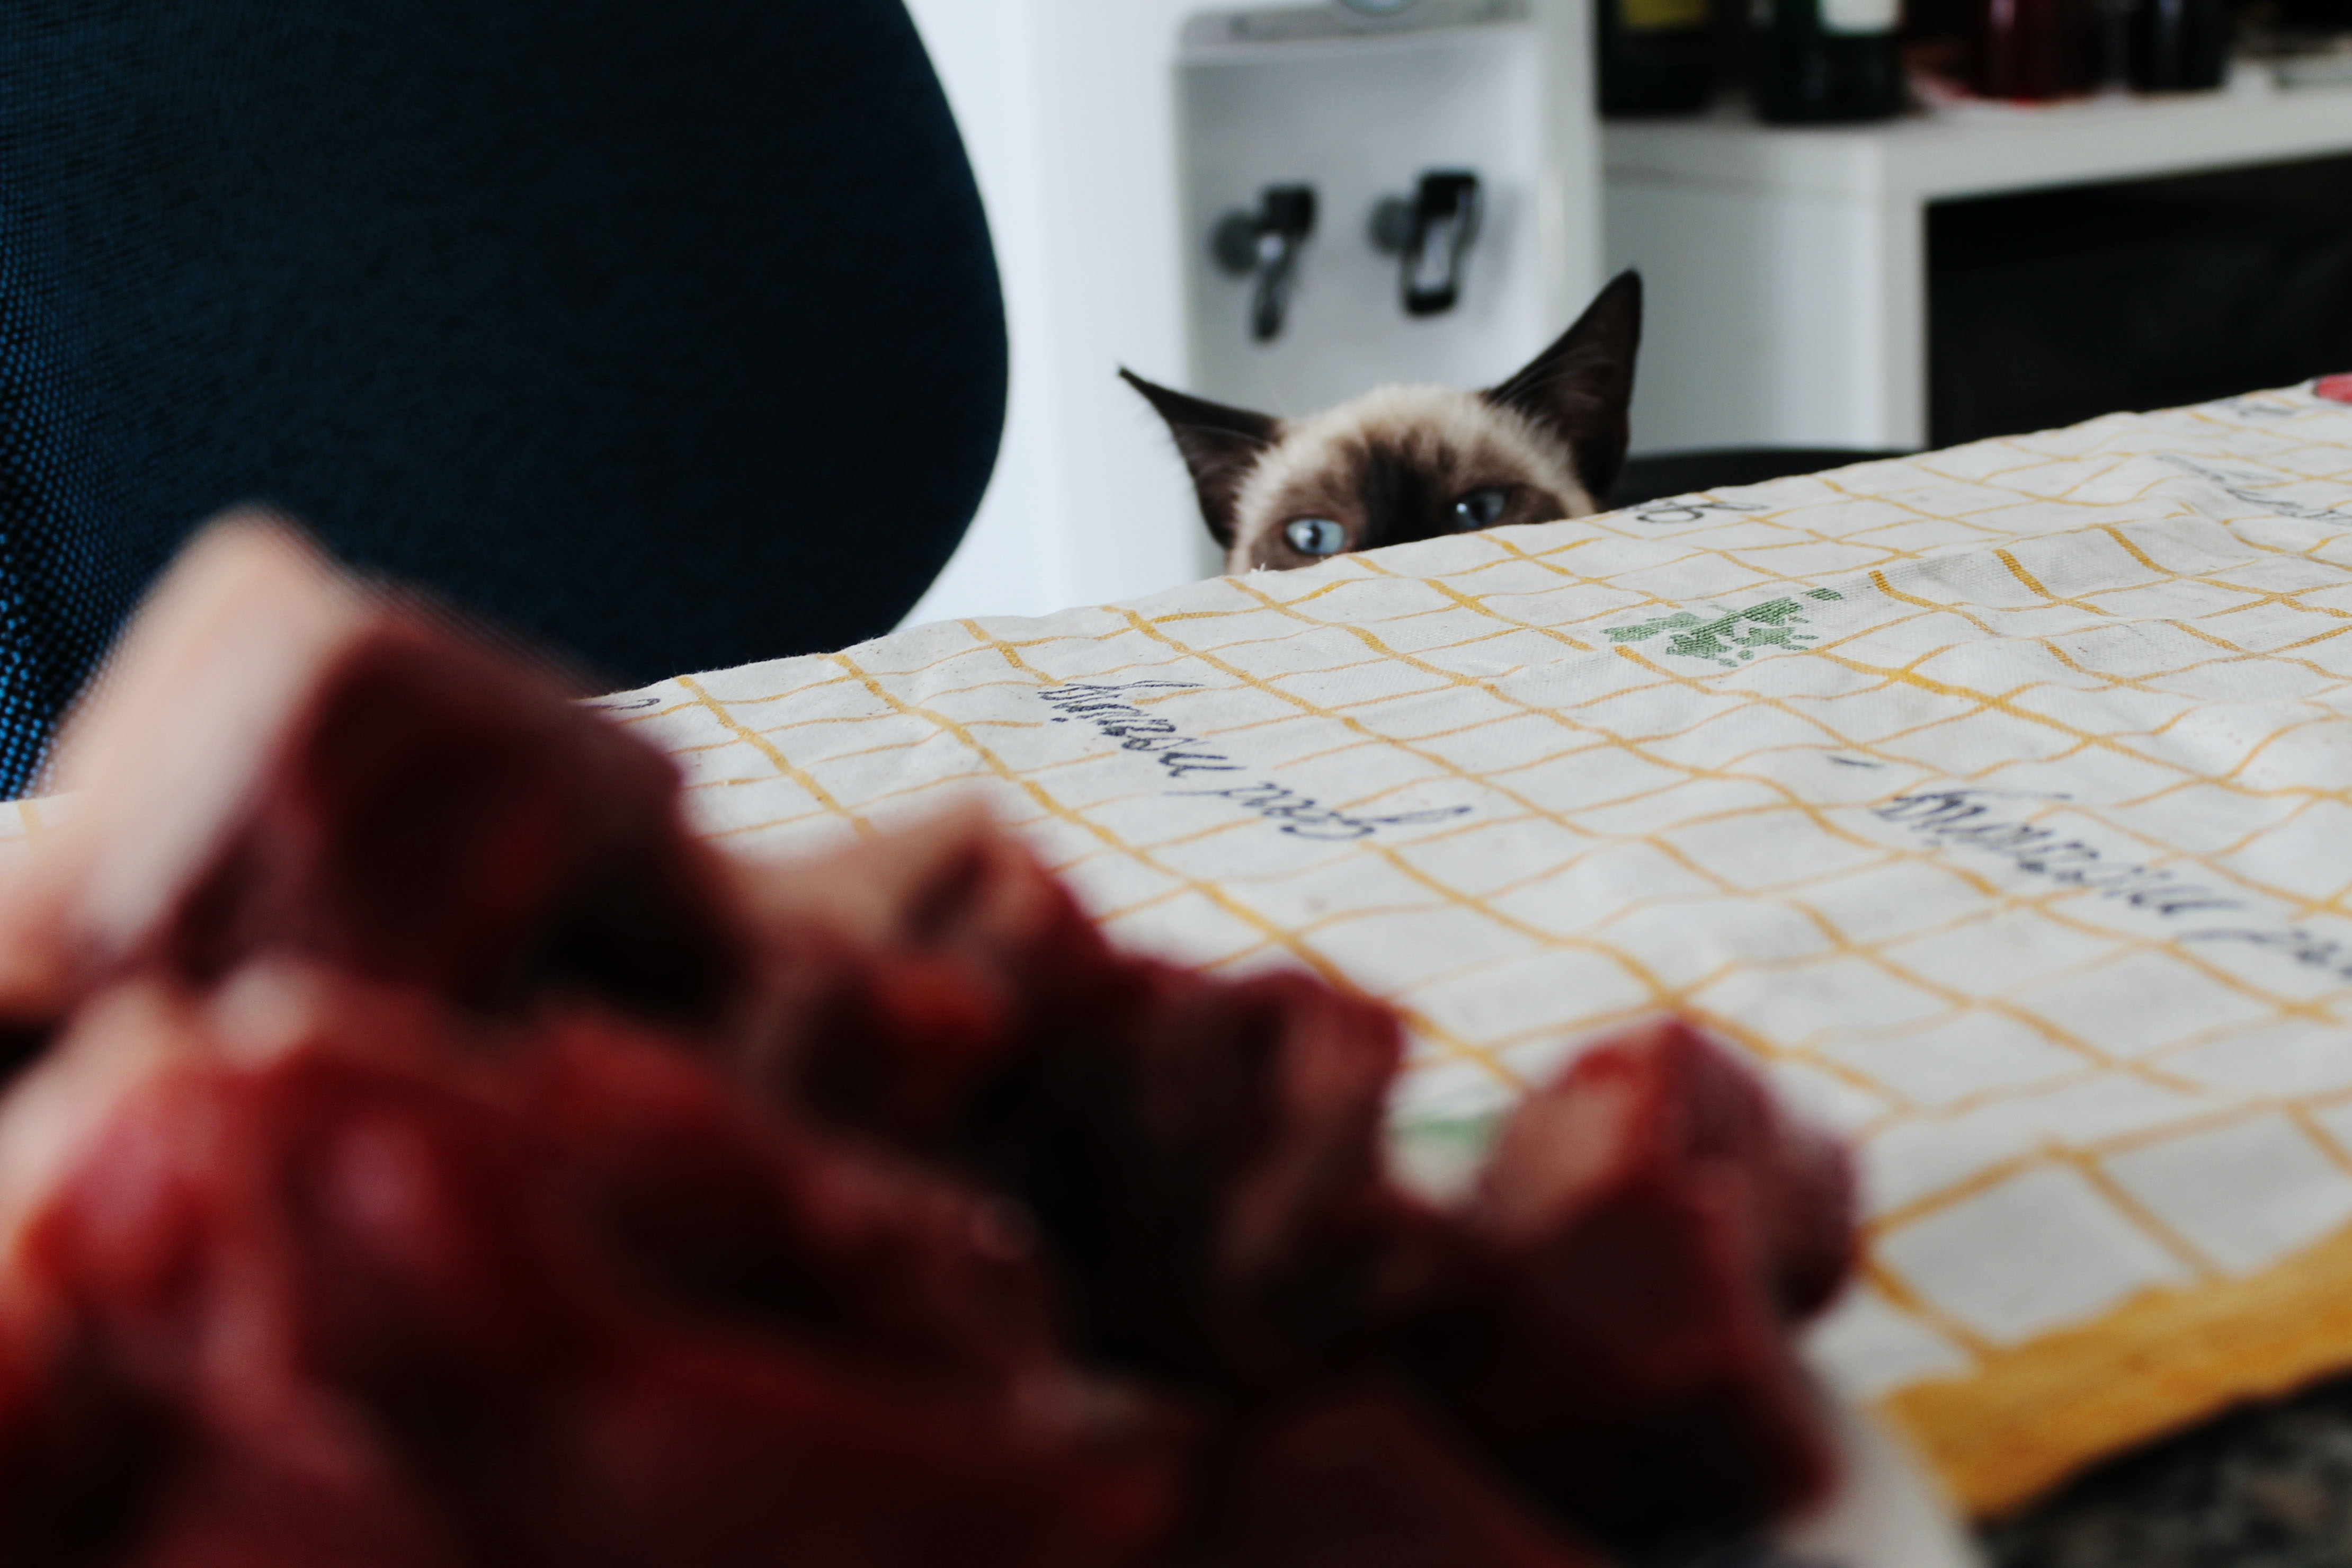 Siamese cat peeping near edge of table